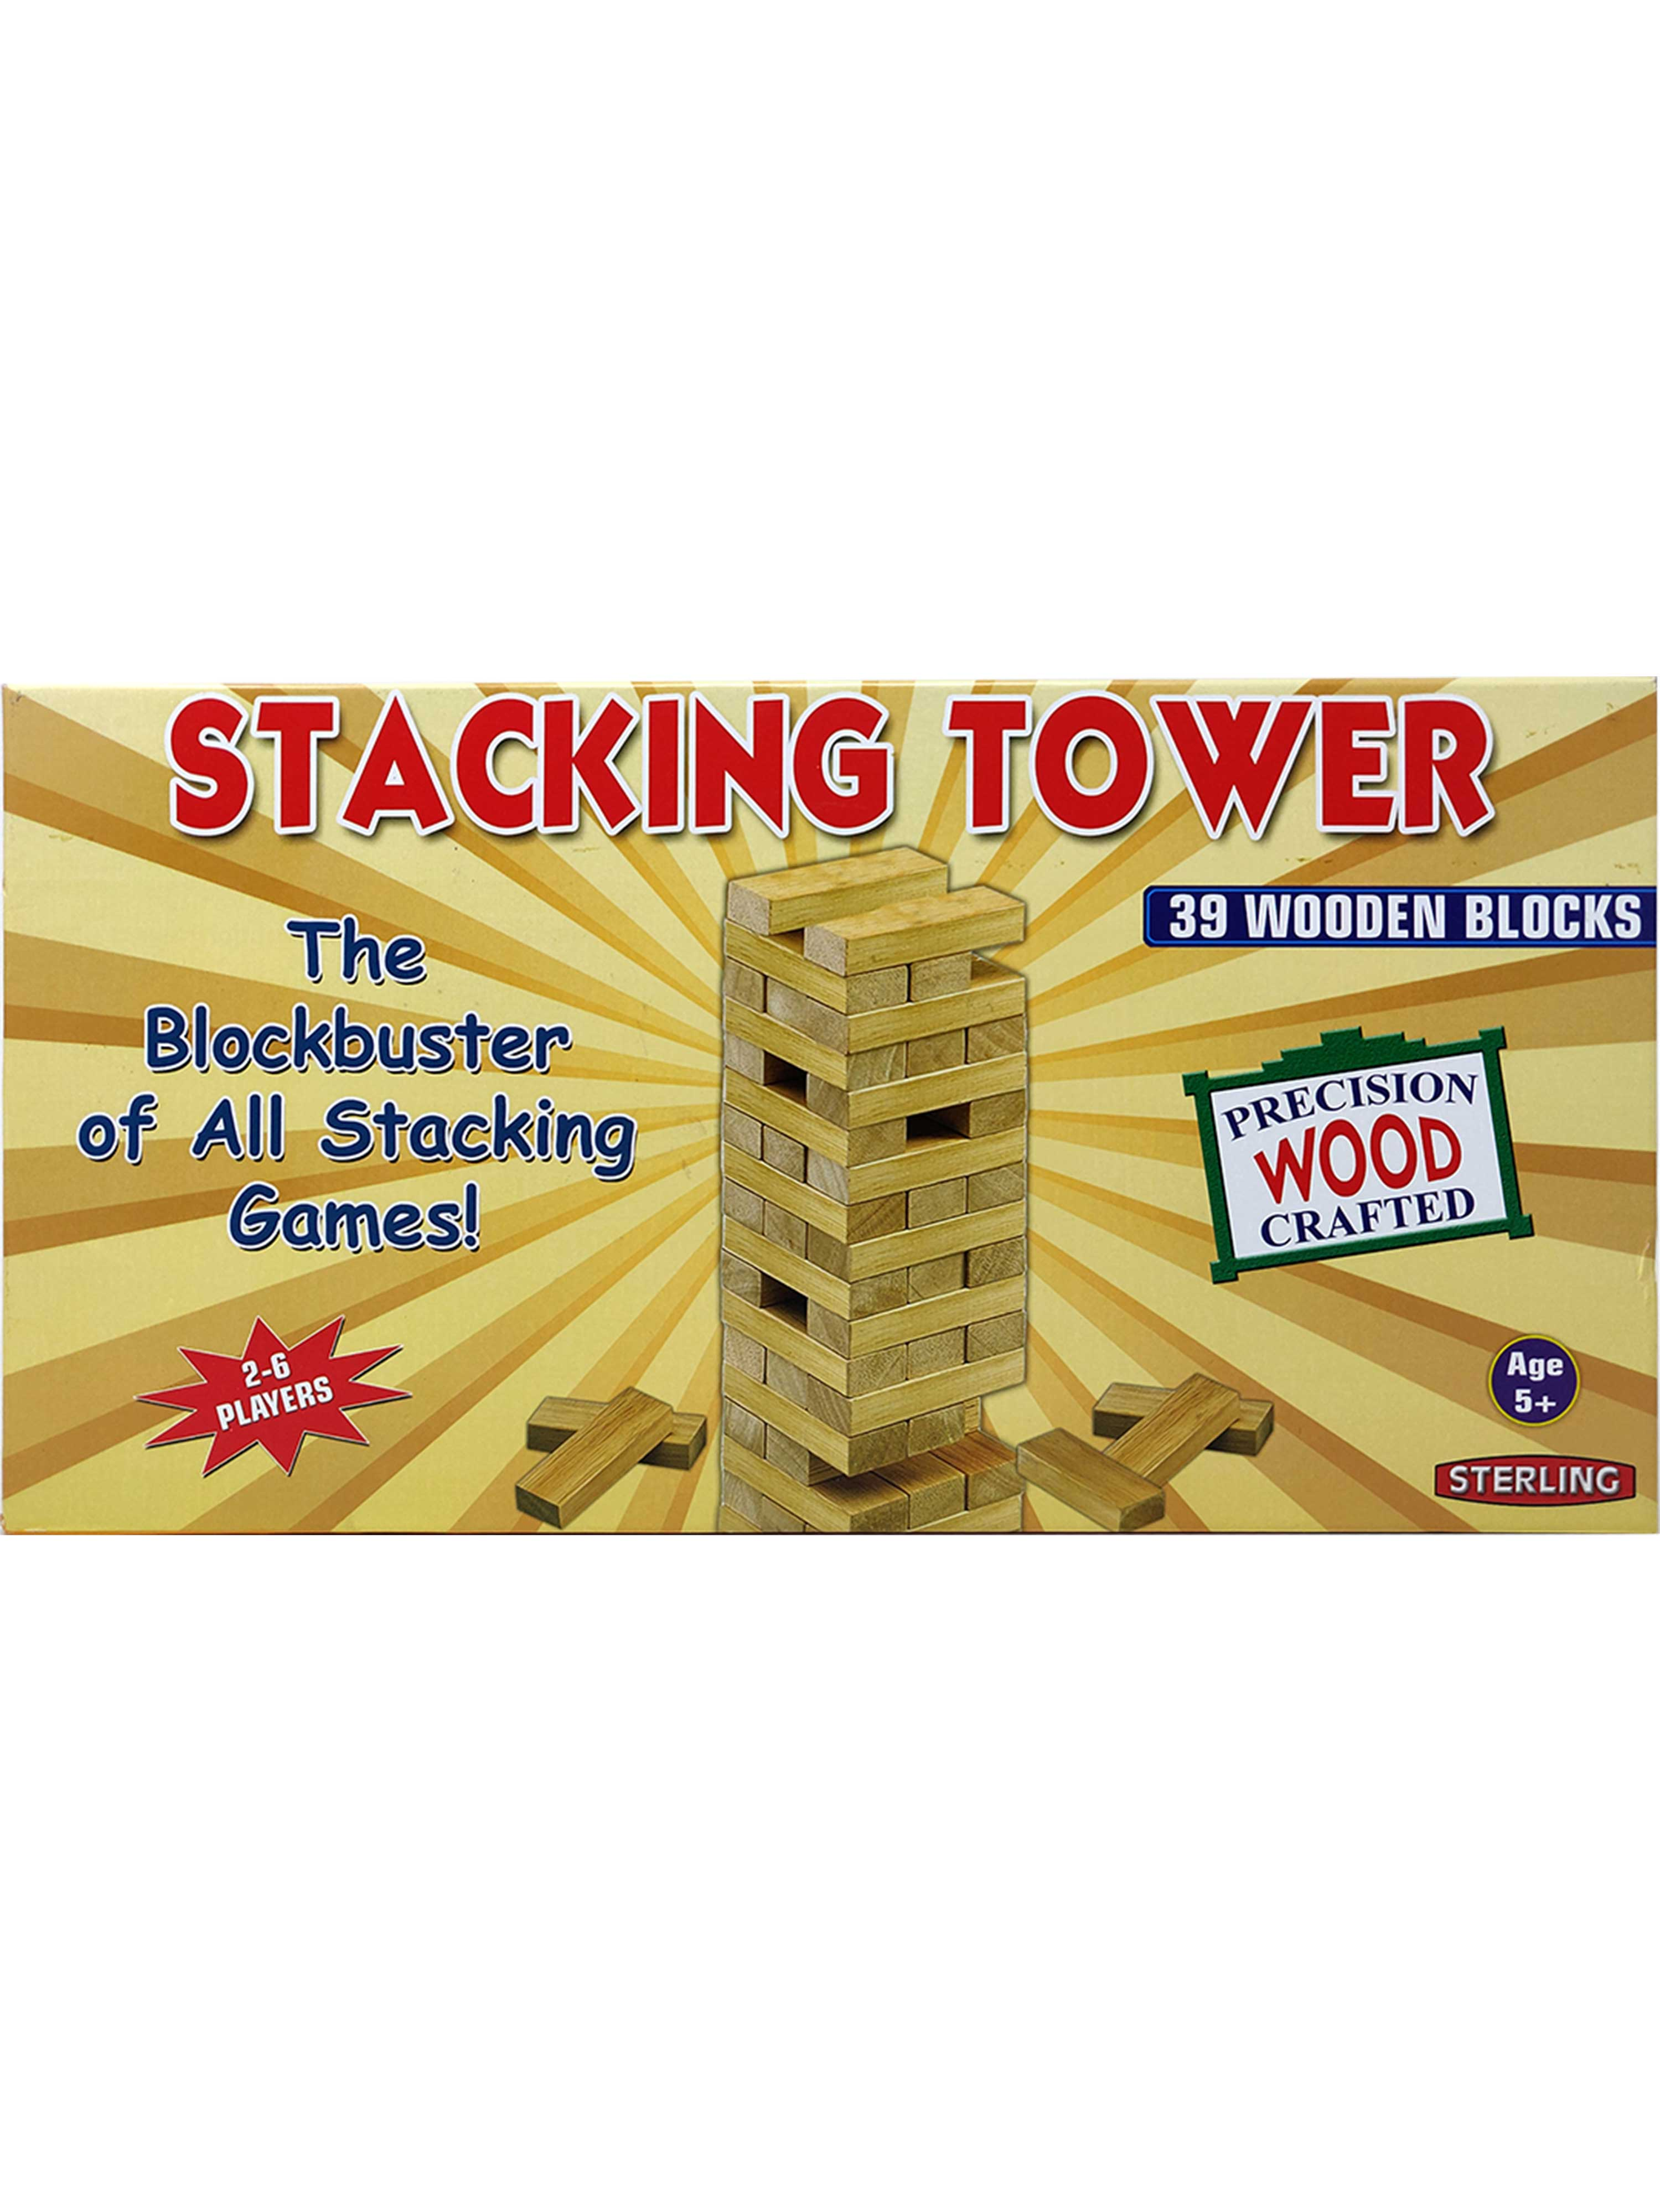 Stacking Tower